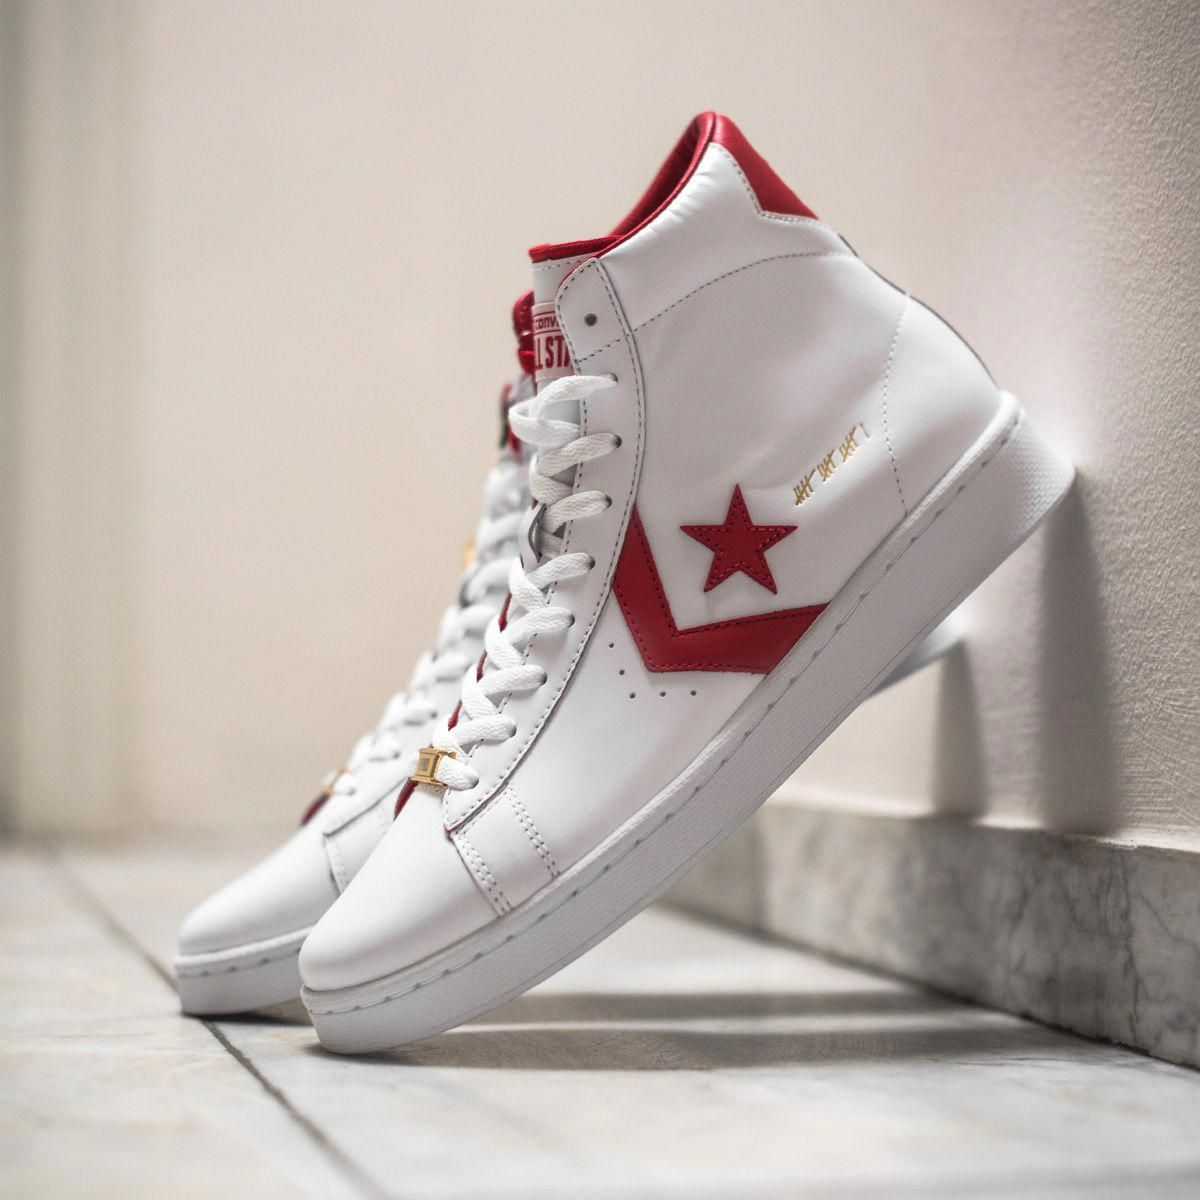 The Converse Pro Leather MID CT16 is part of the highly